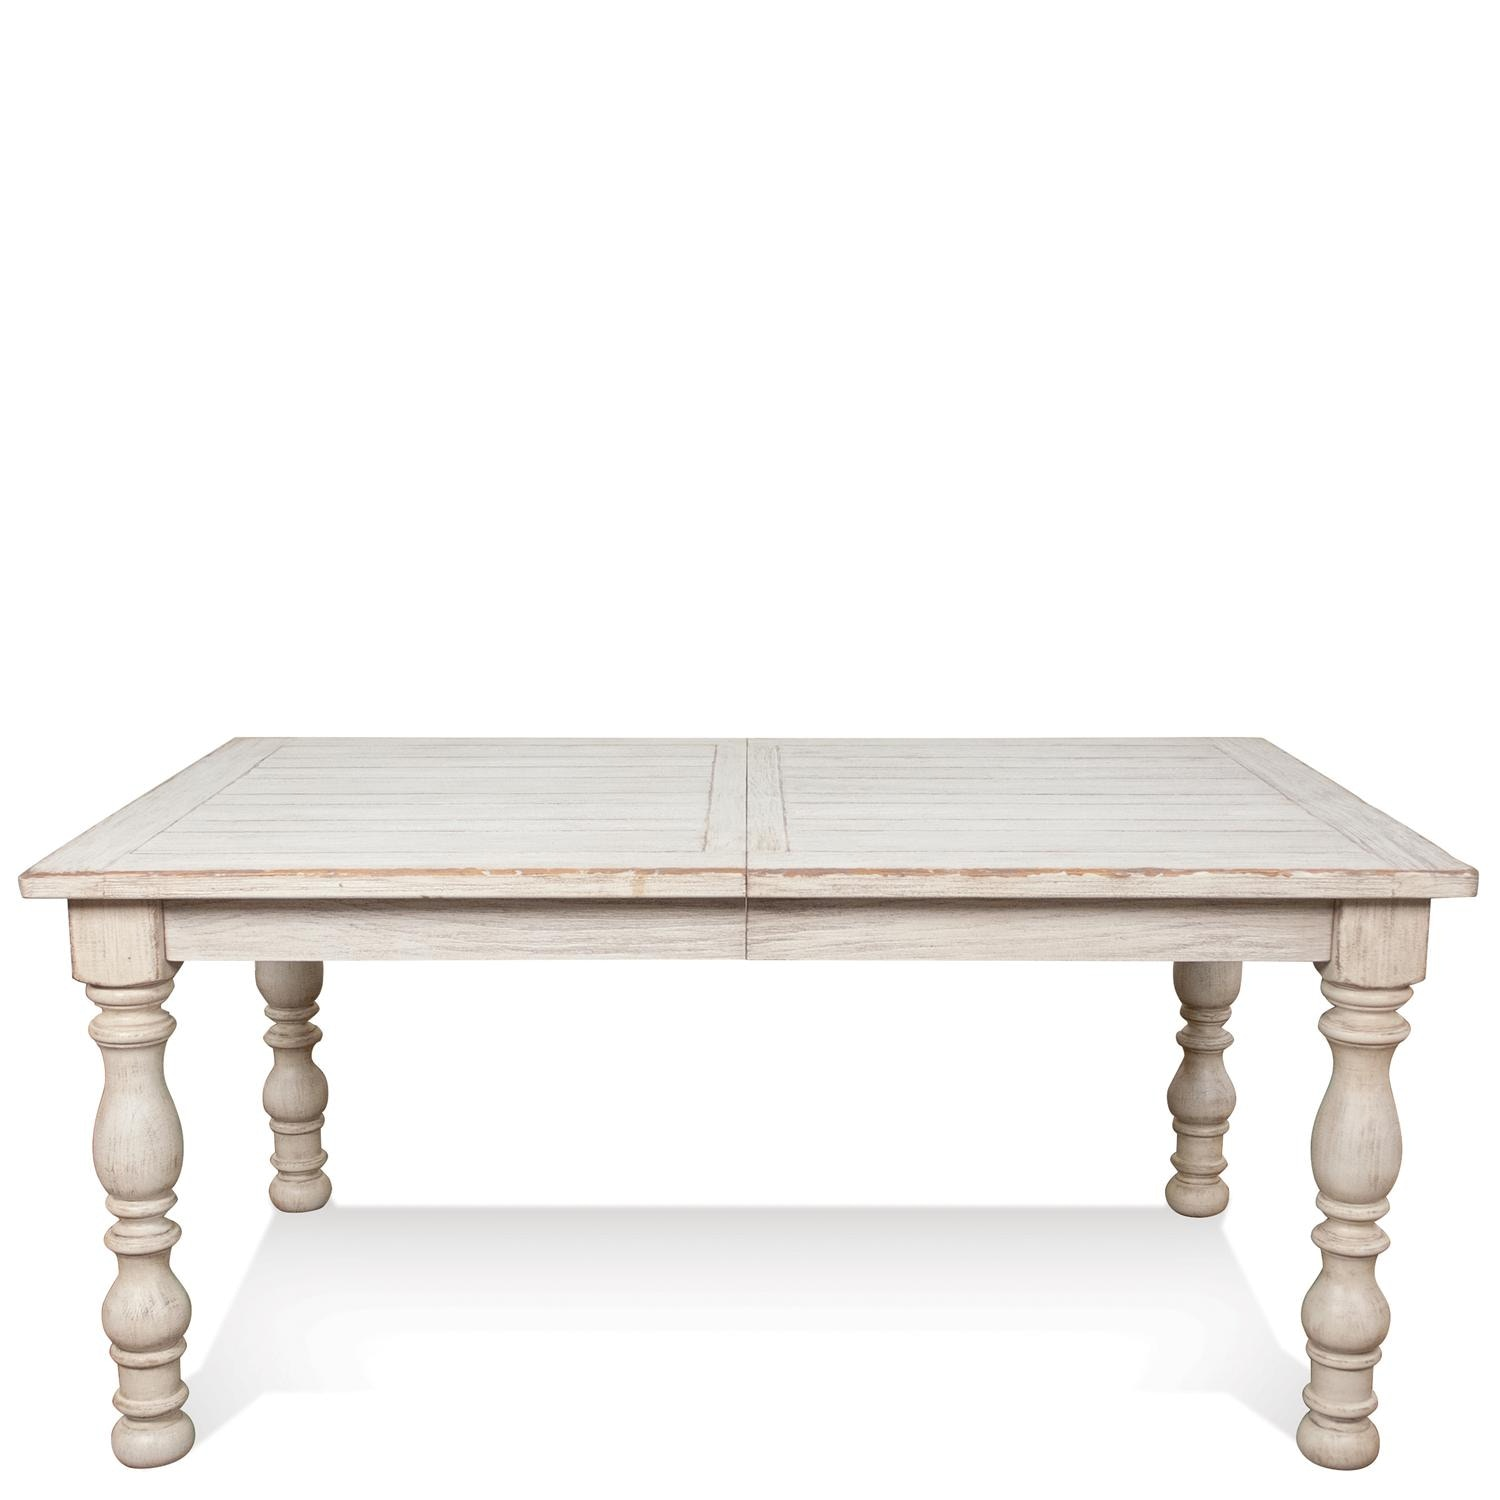 21250. Rectangular Dining Table